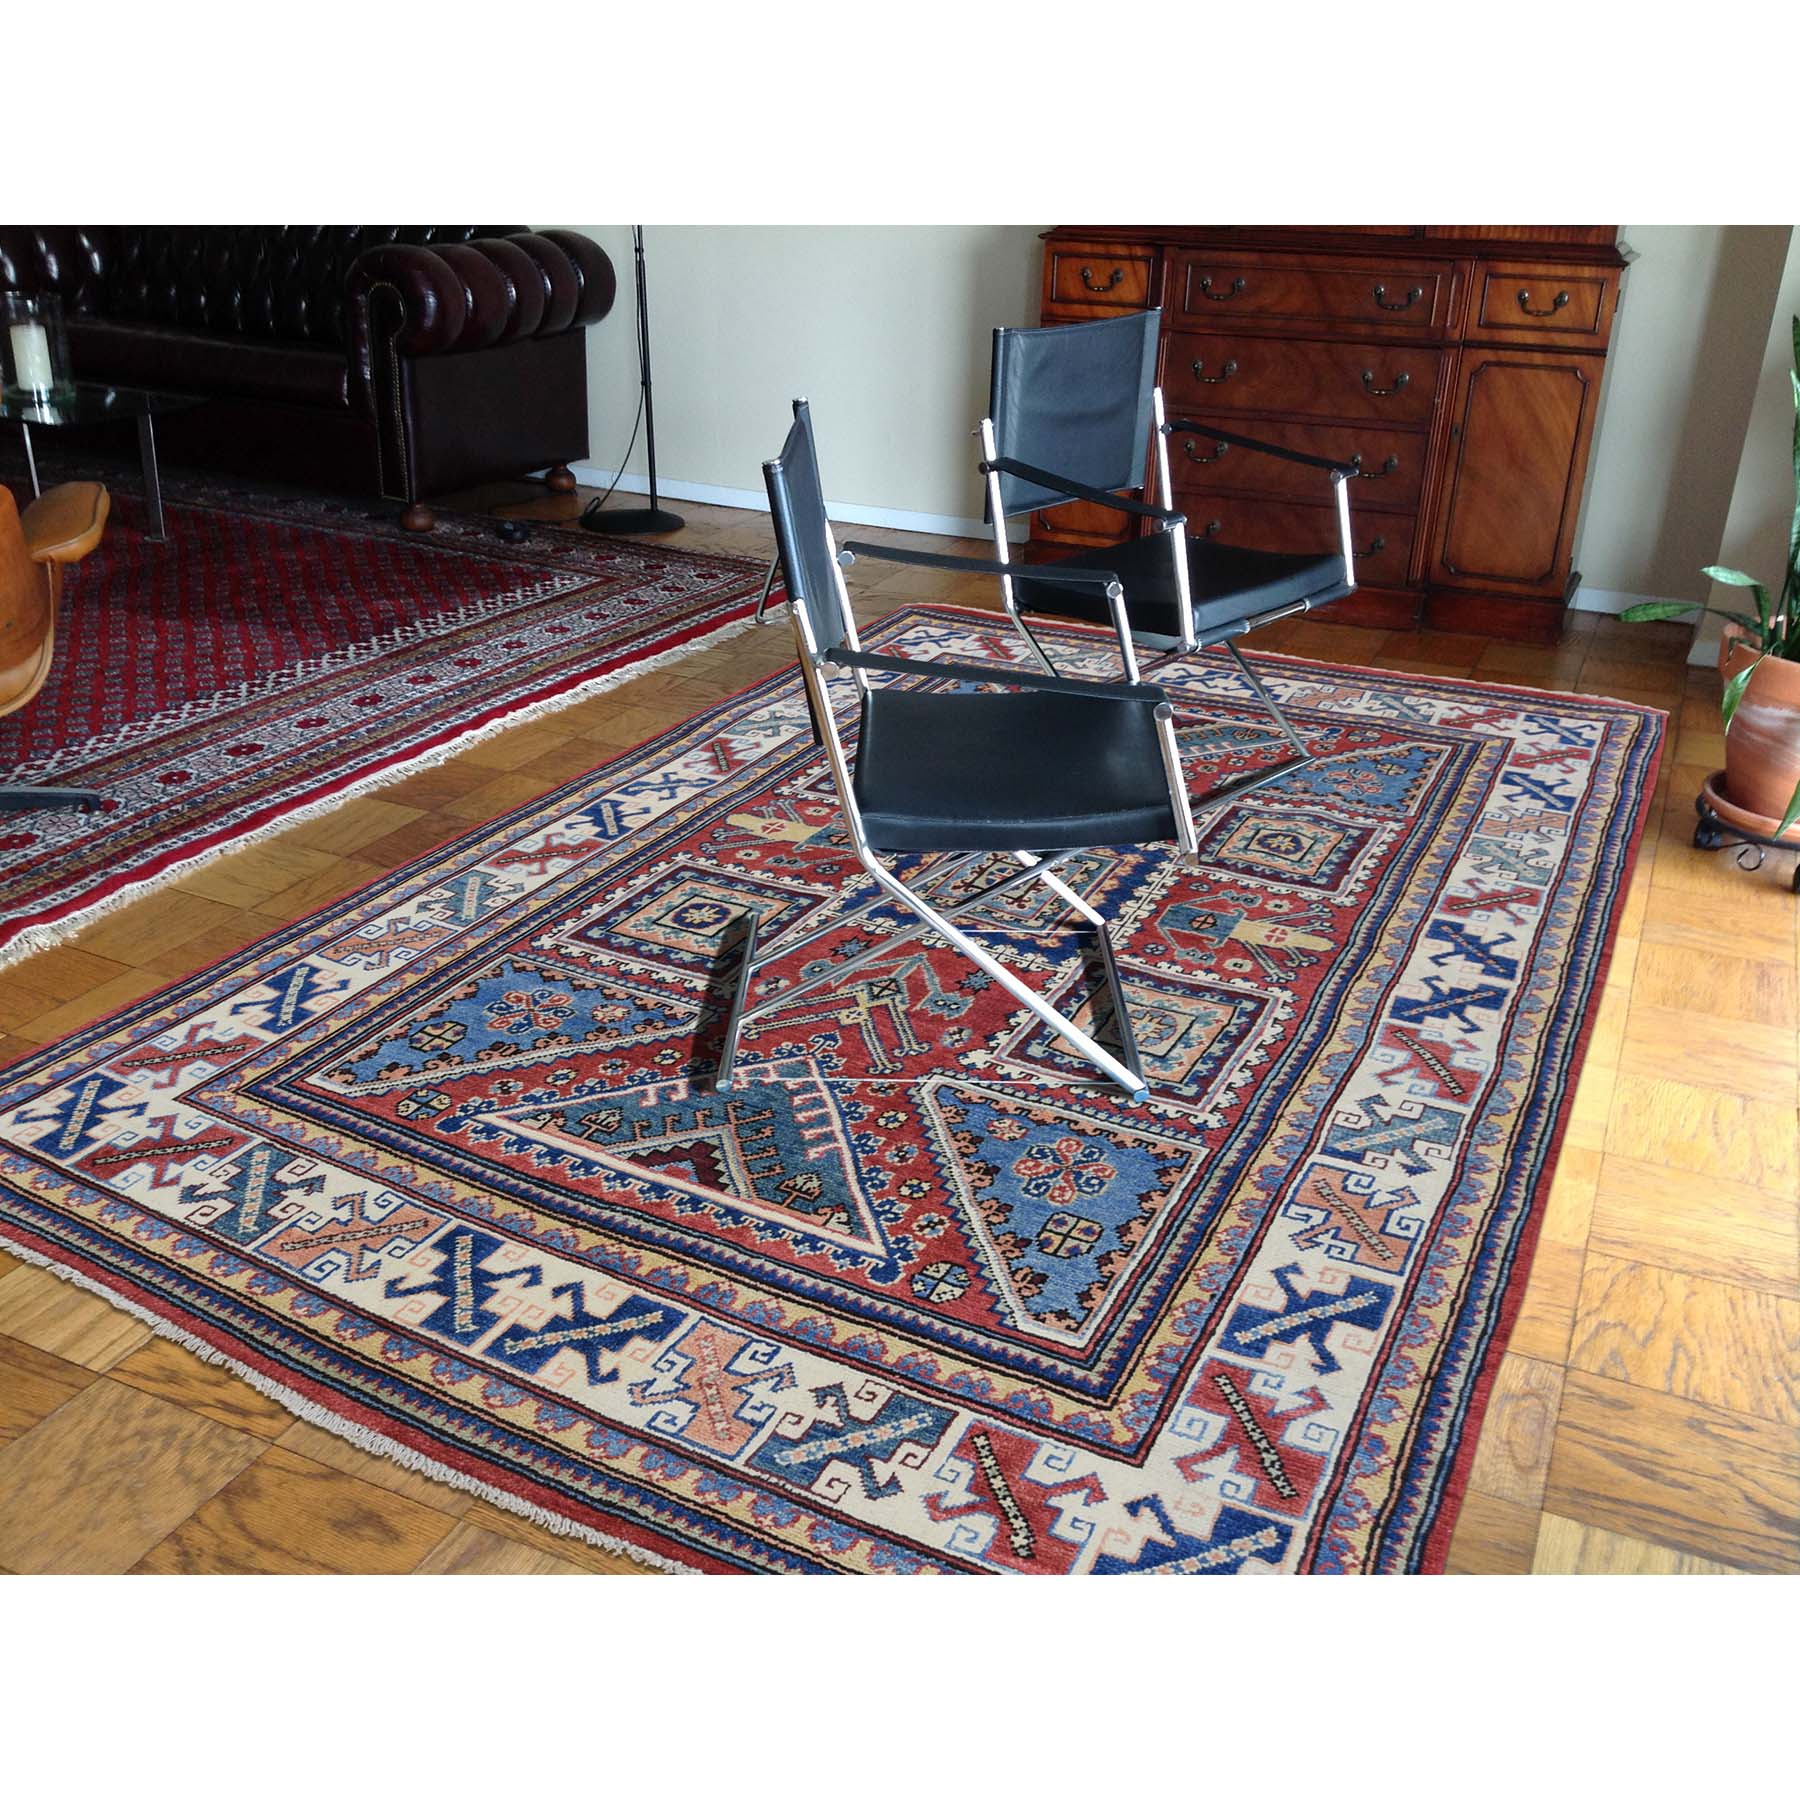 5-x6-5-- Hand-Knotted Pure Wool Red Special Kazak Oriental Rug